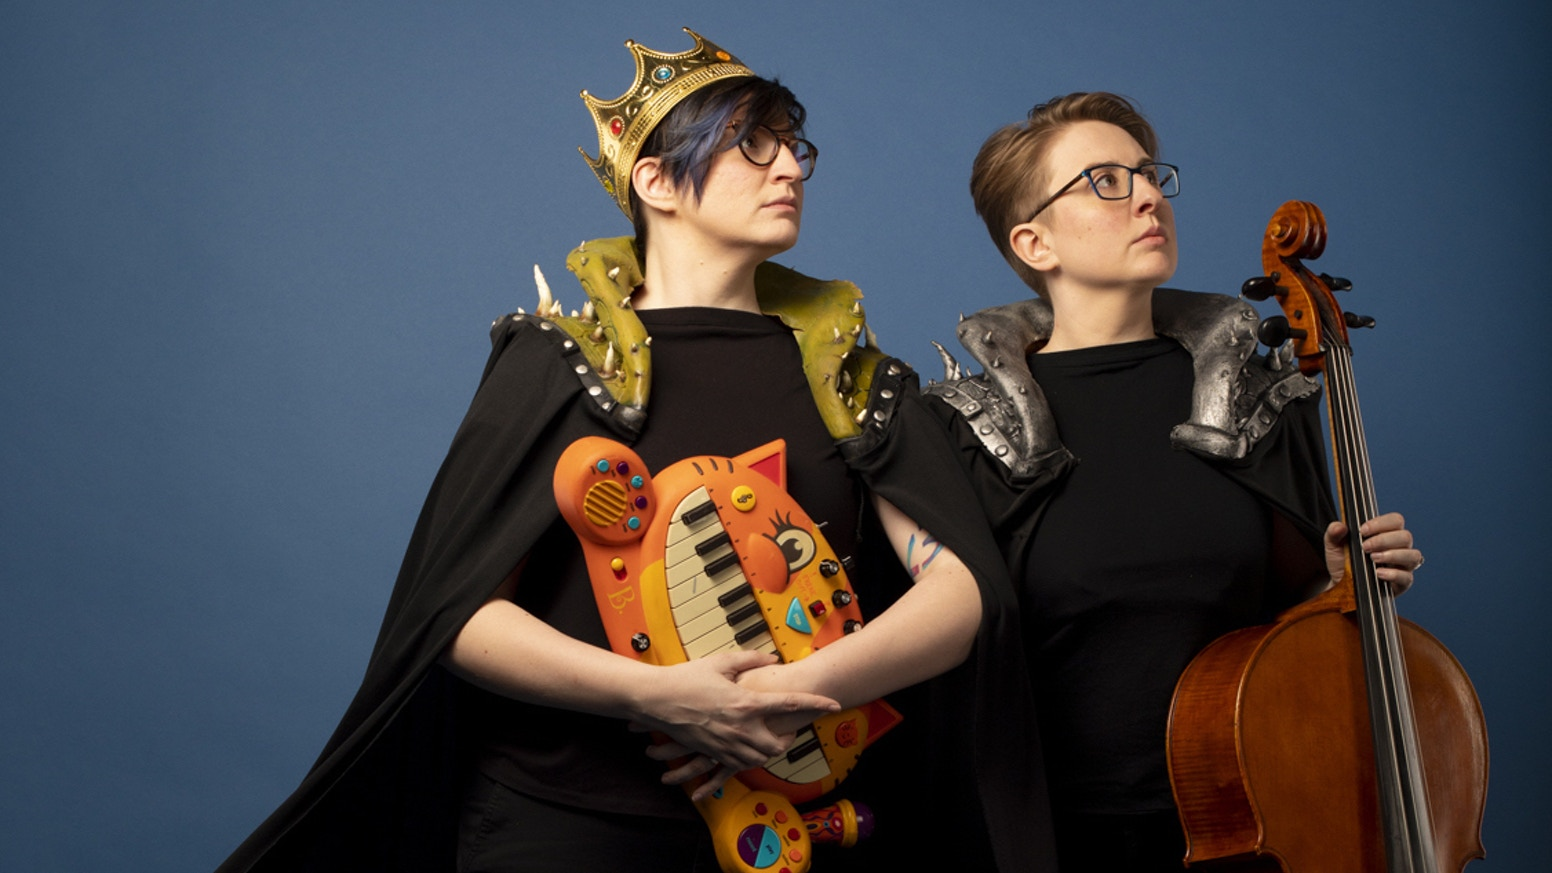 We admit it: The Internet was a mistake. The Doubleclicks are making an album all about it, plus some other REAL things.